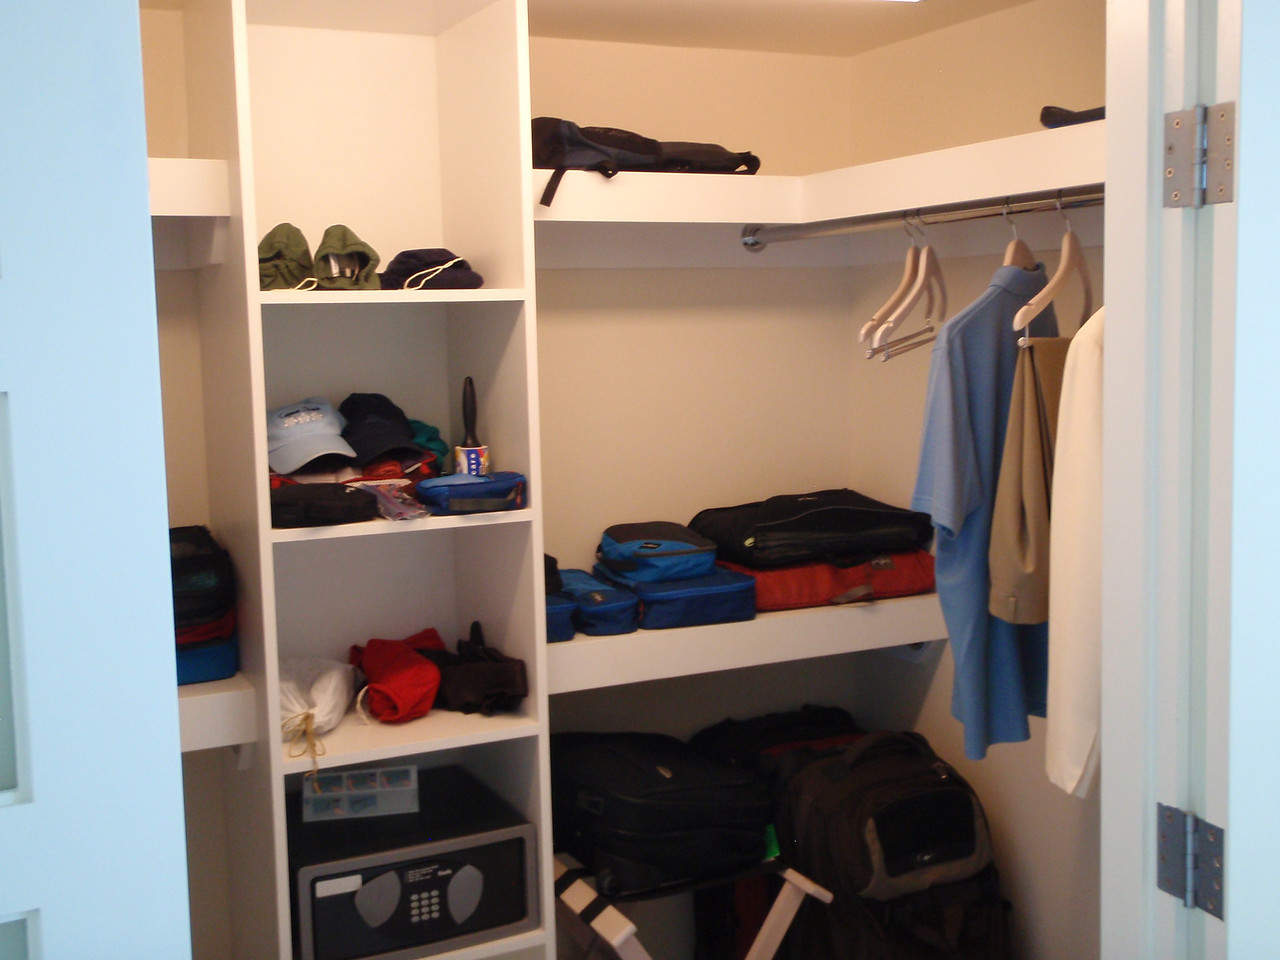 And a walk-in closet.